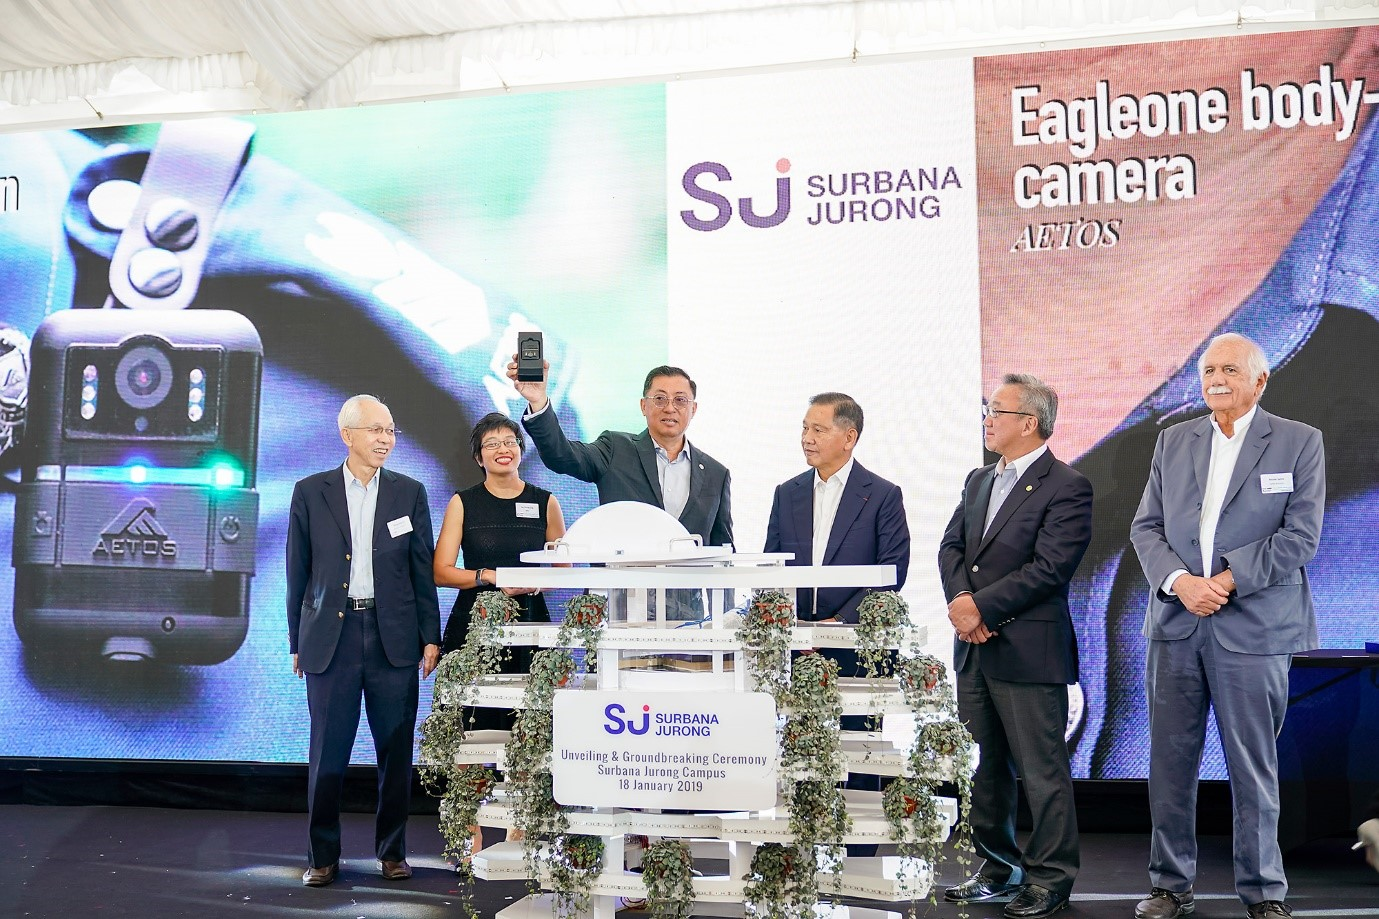 Surbana Jurong Campus time capsule unveiling